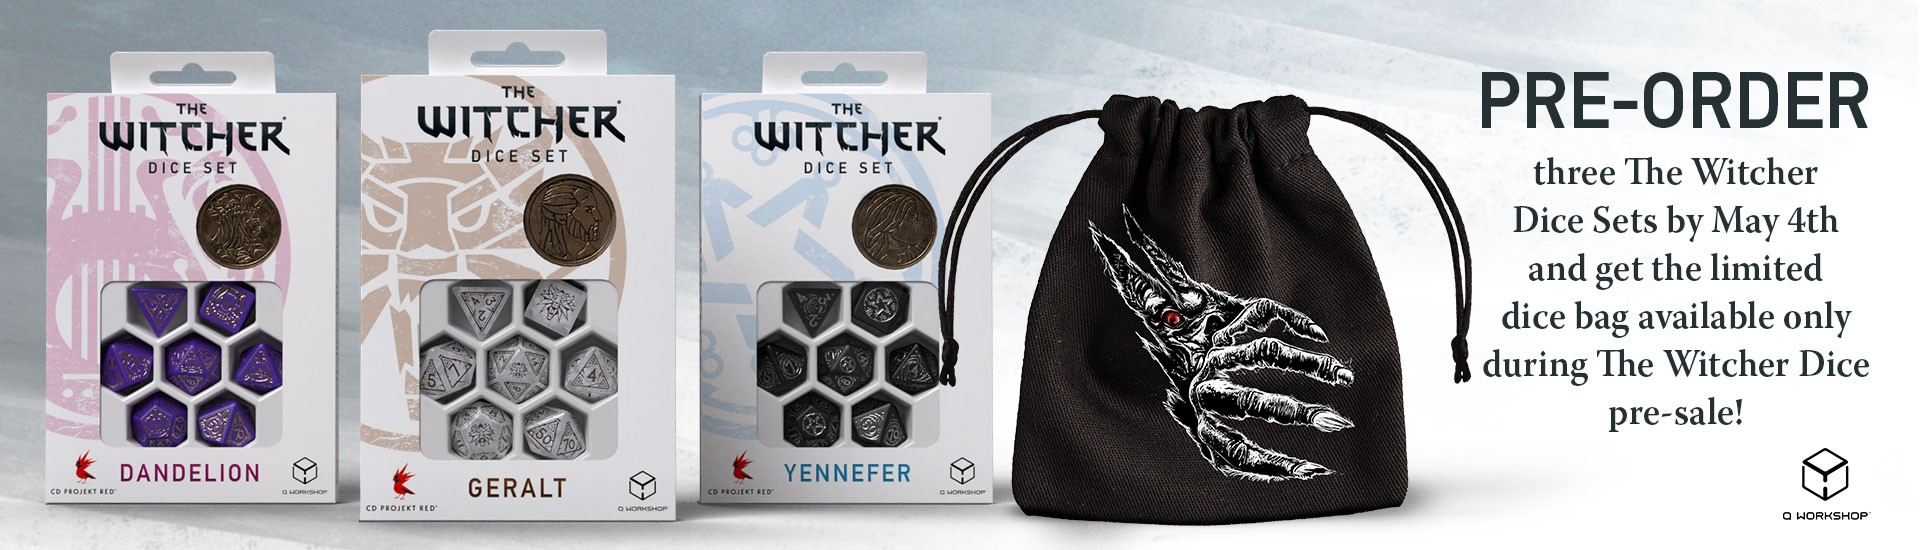 THE WITCHER PRE-ORDER